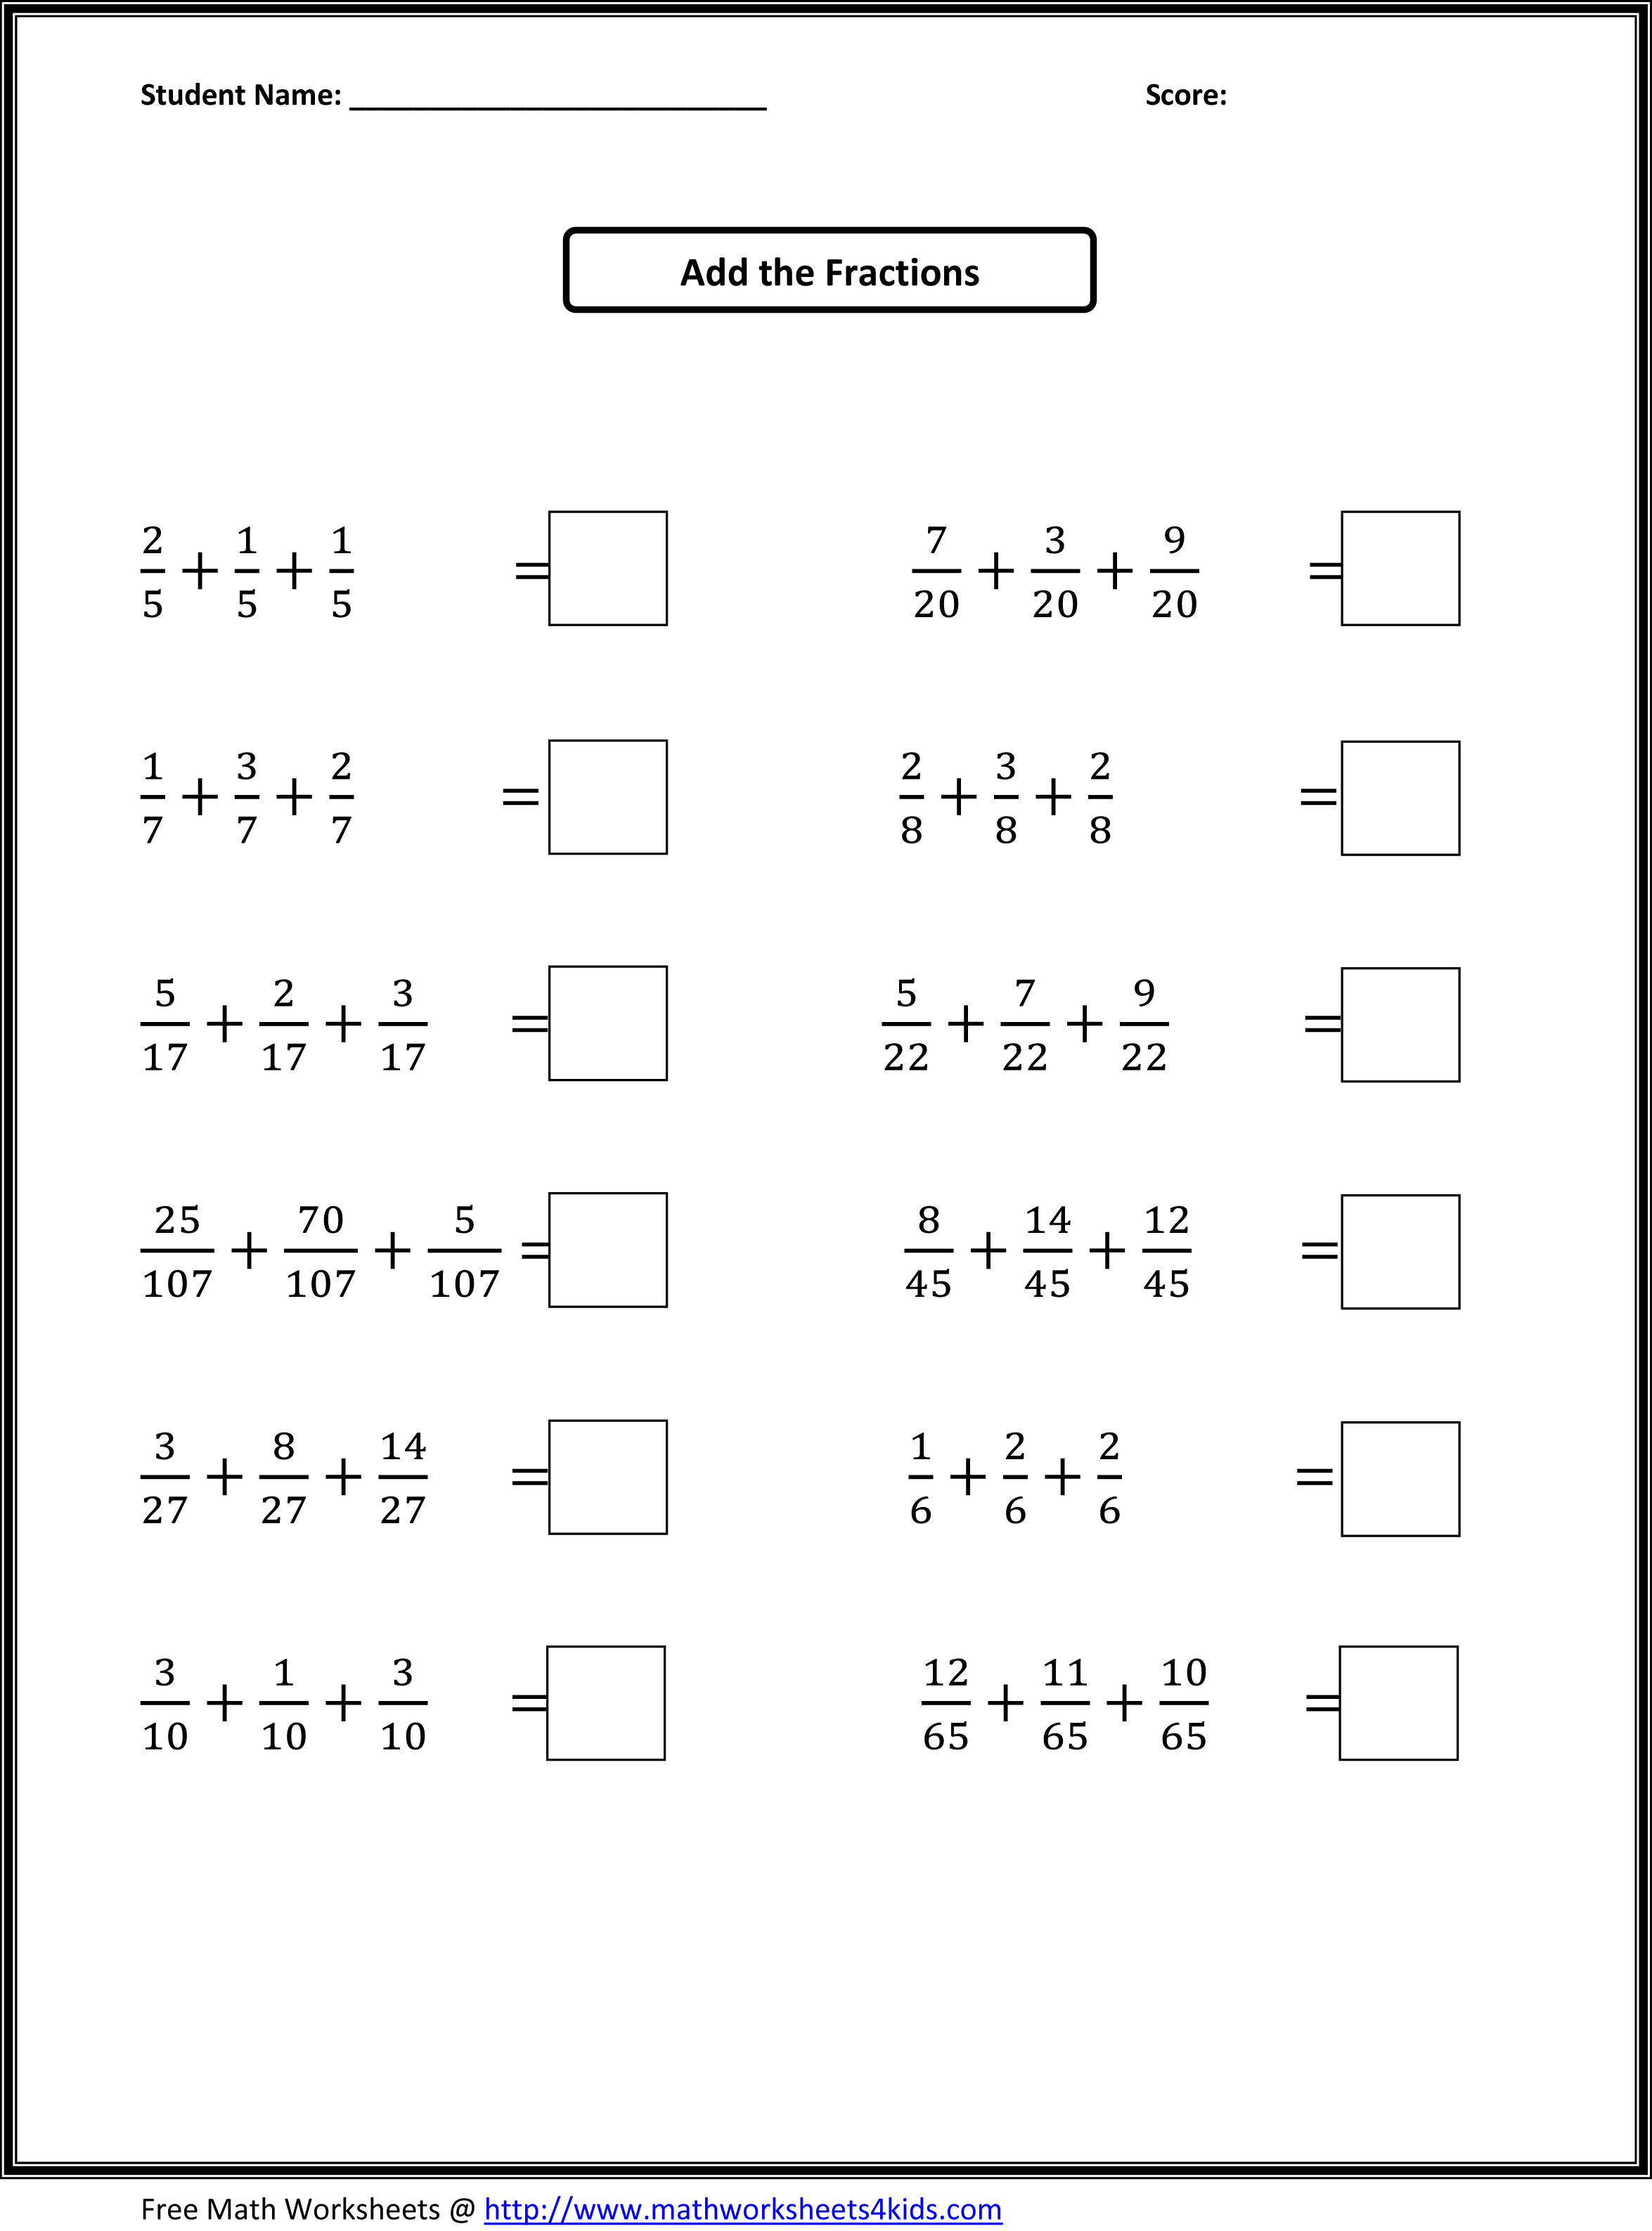 math worksheet : 4th grade math worksheets multiplying fractions  kids activities : Math Multiplying Fractions Worksheets